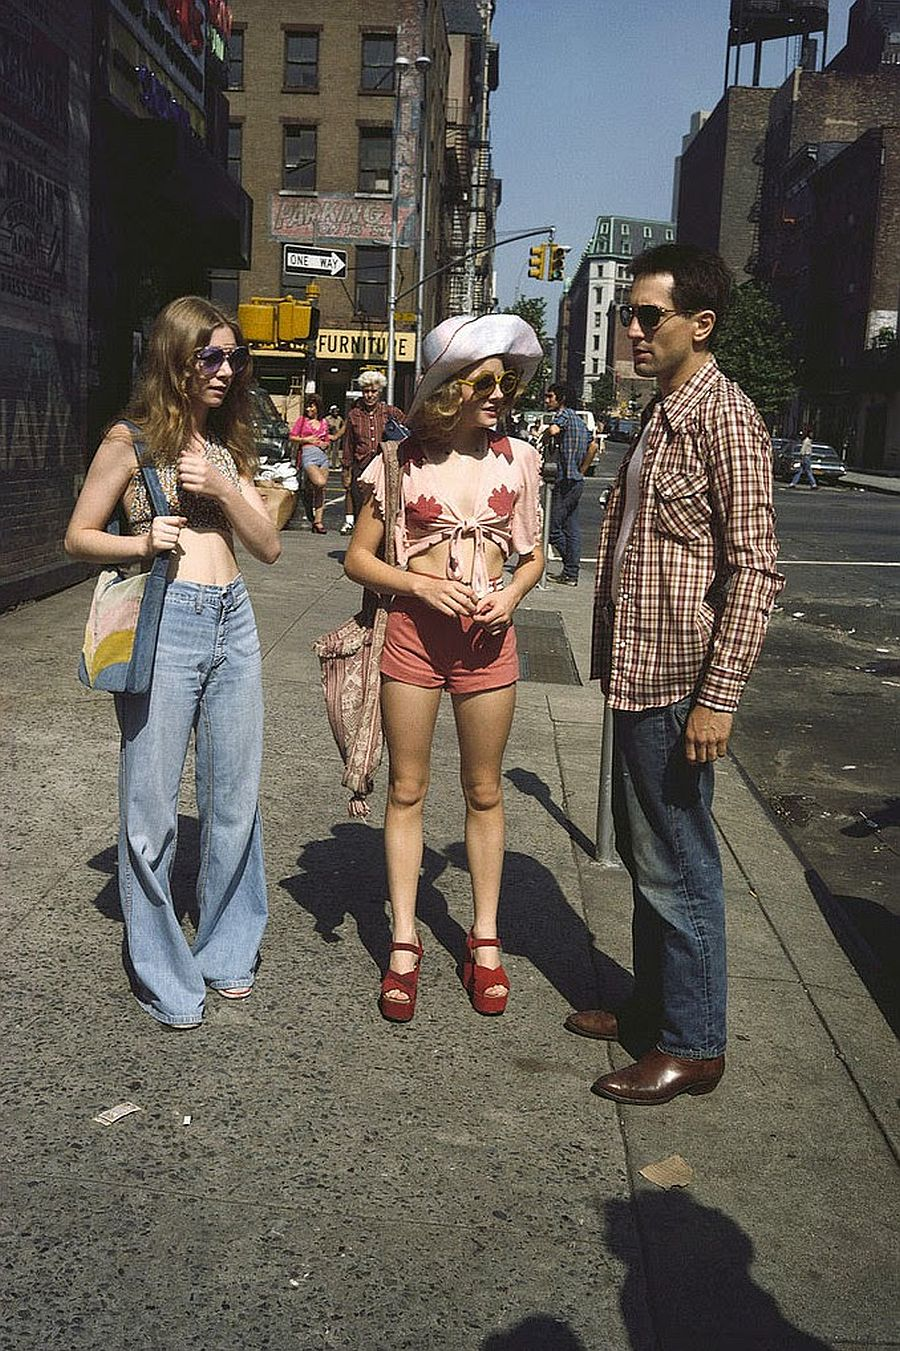 behind-the-scenes-jodie-foster-on-the-set-of-taxi-driver-1976-04